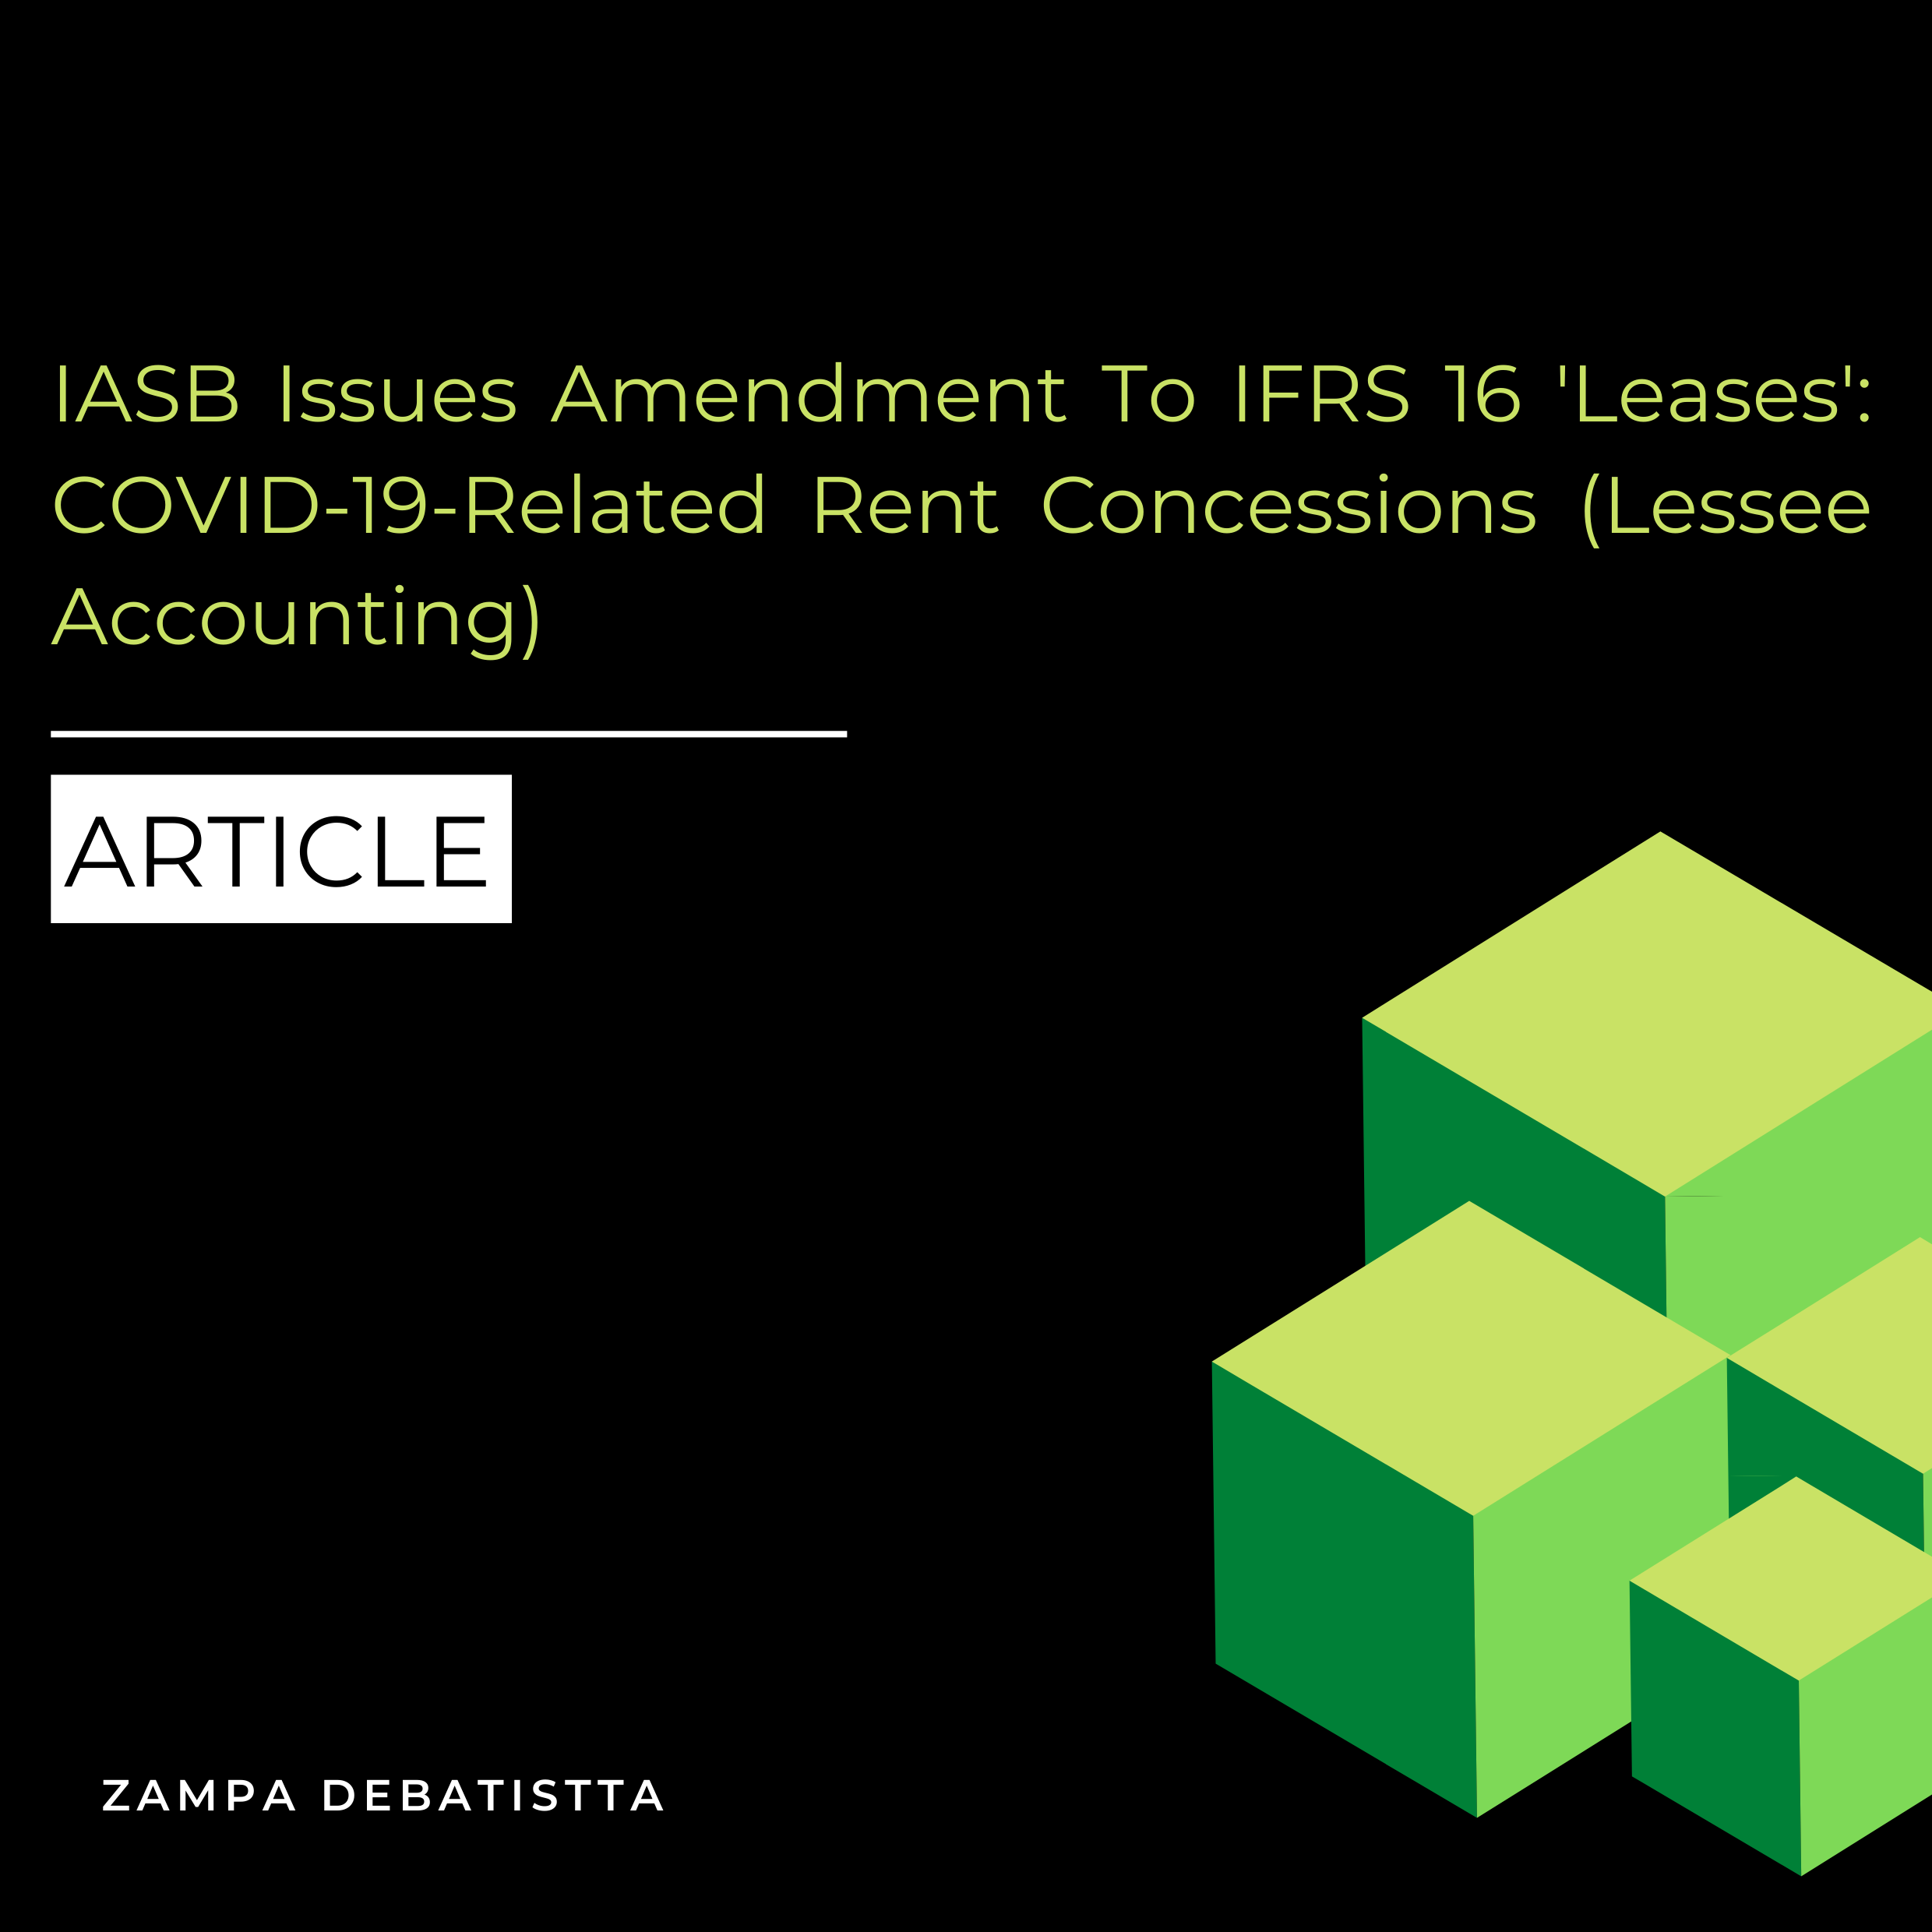 IASB Issues Amendment To IFRS 16 'Leases': COVID-19-Related Rent Concessions (Lessee Accounting)